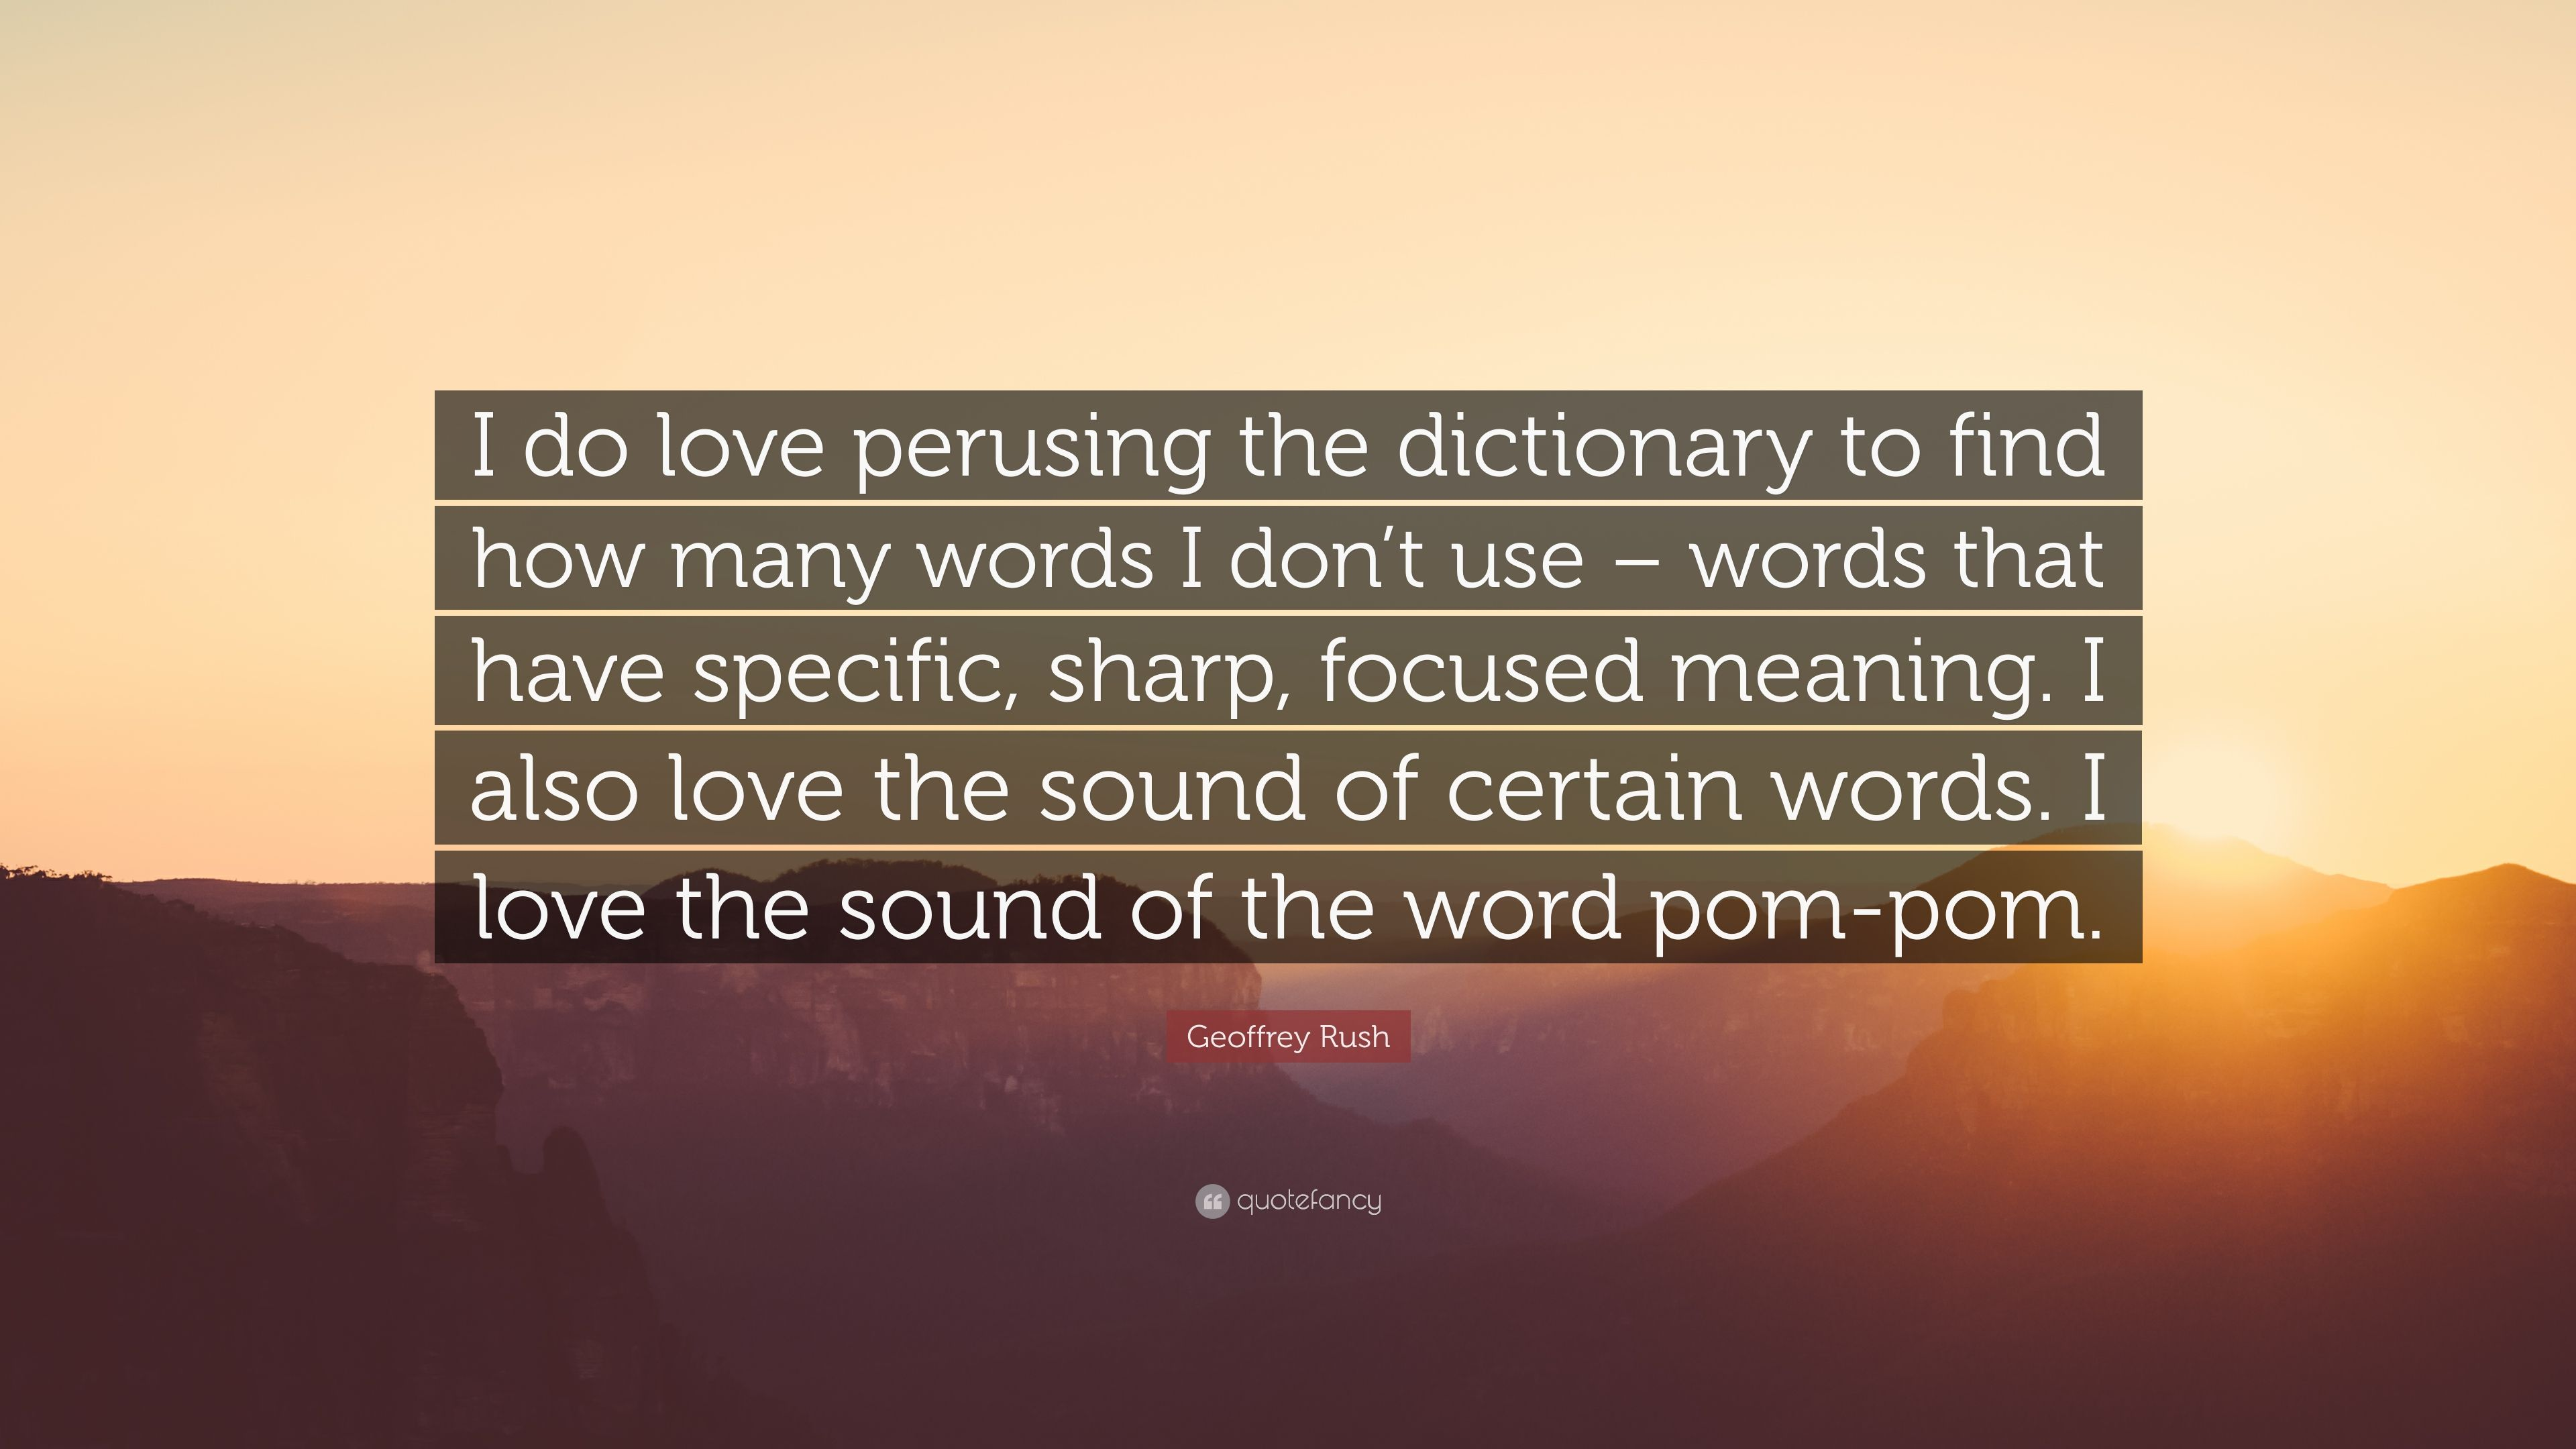 Geoffrey Rush Quote I Do Love Perusing The Dictionary To Find How Many Words